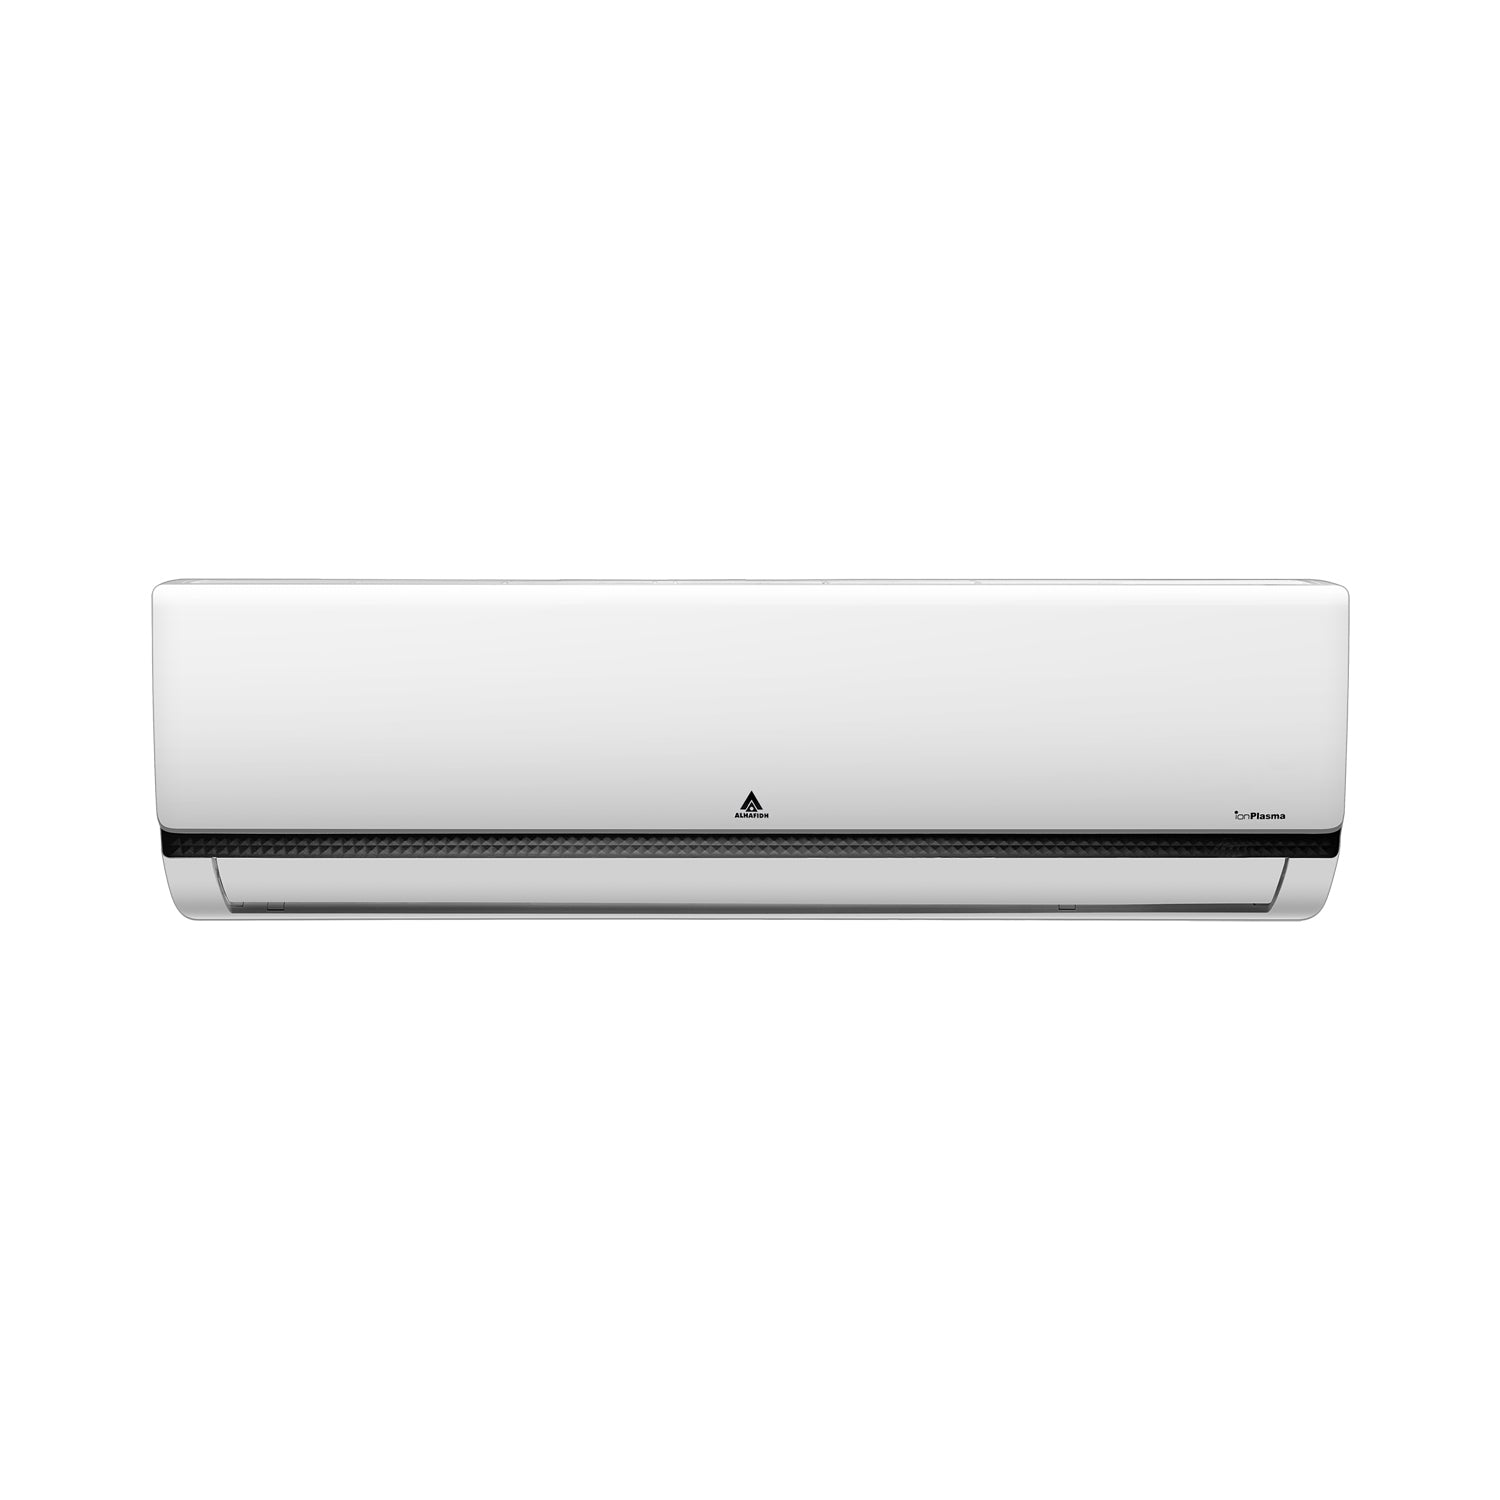 1.5 Ton Wall Mounted Split AC ON/OFF R410